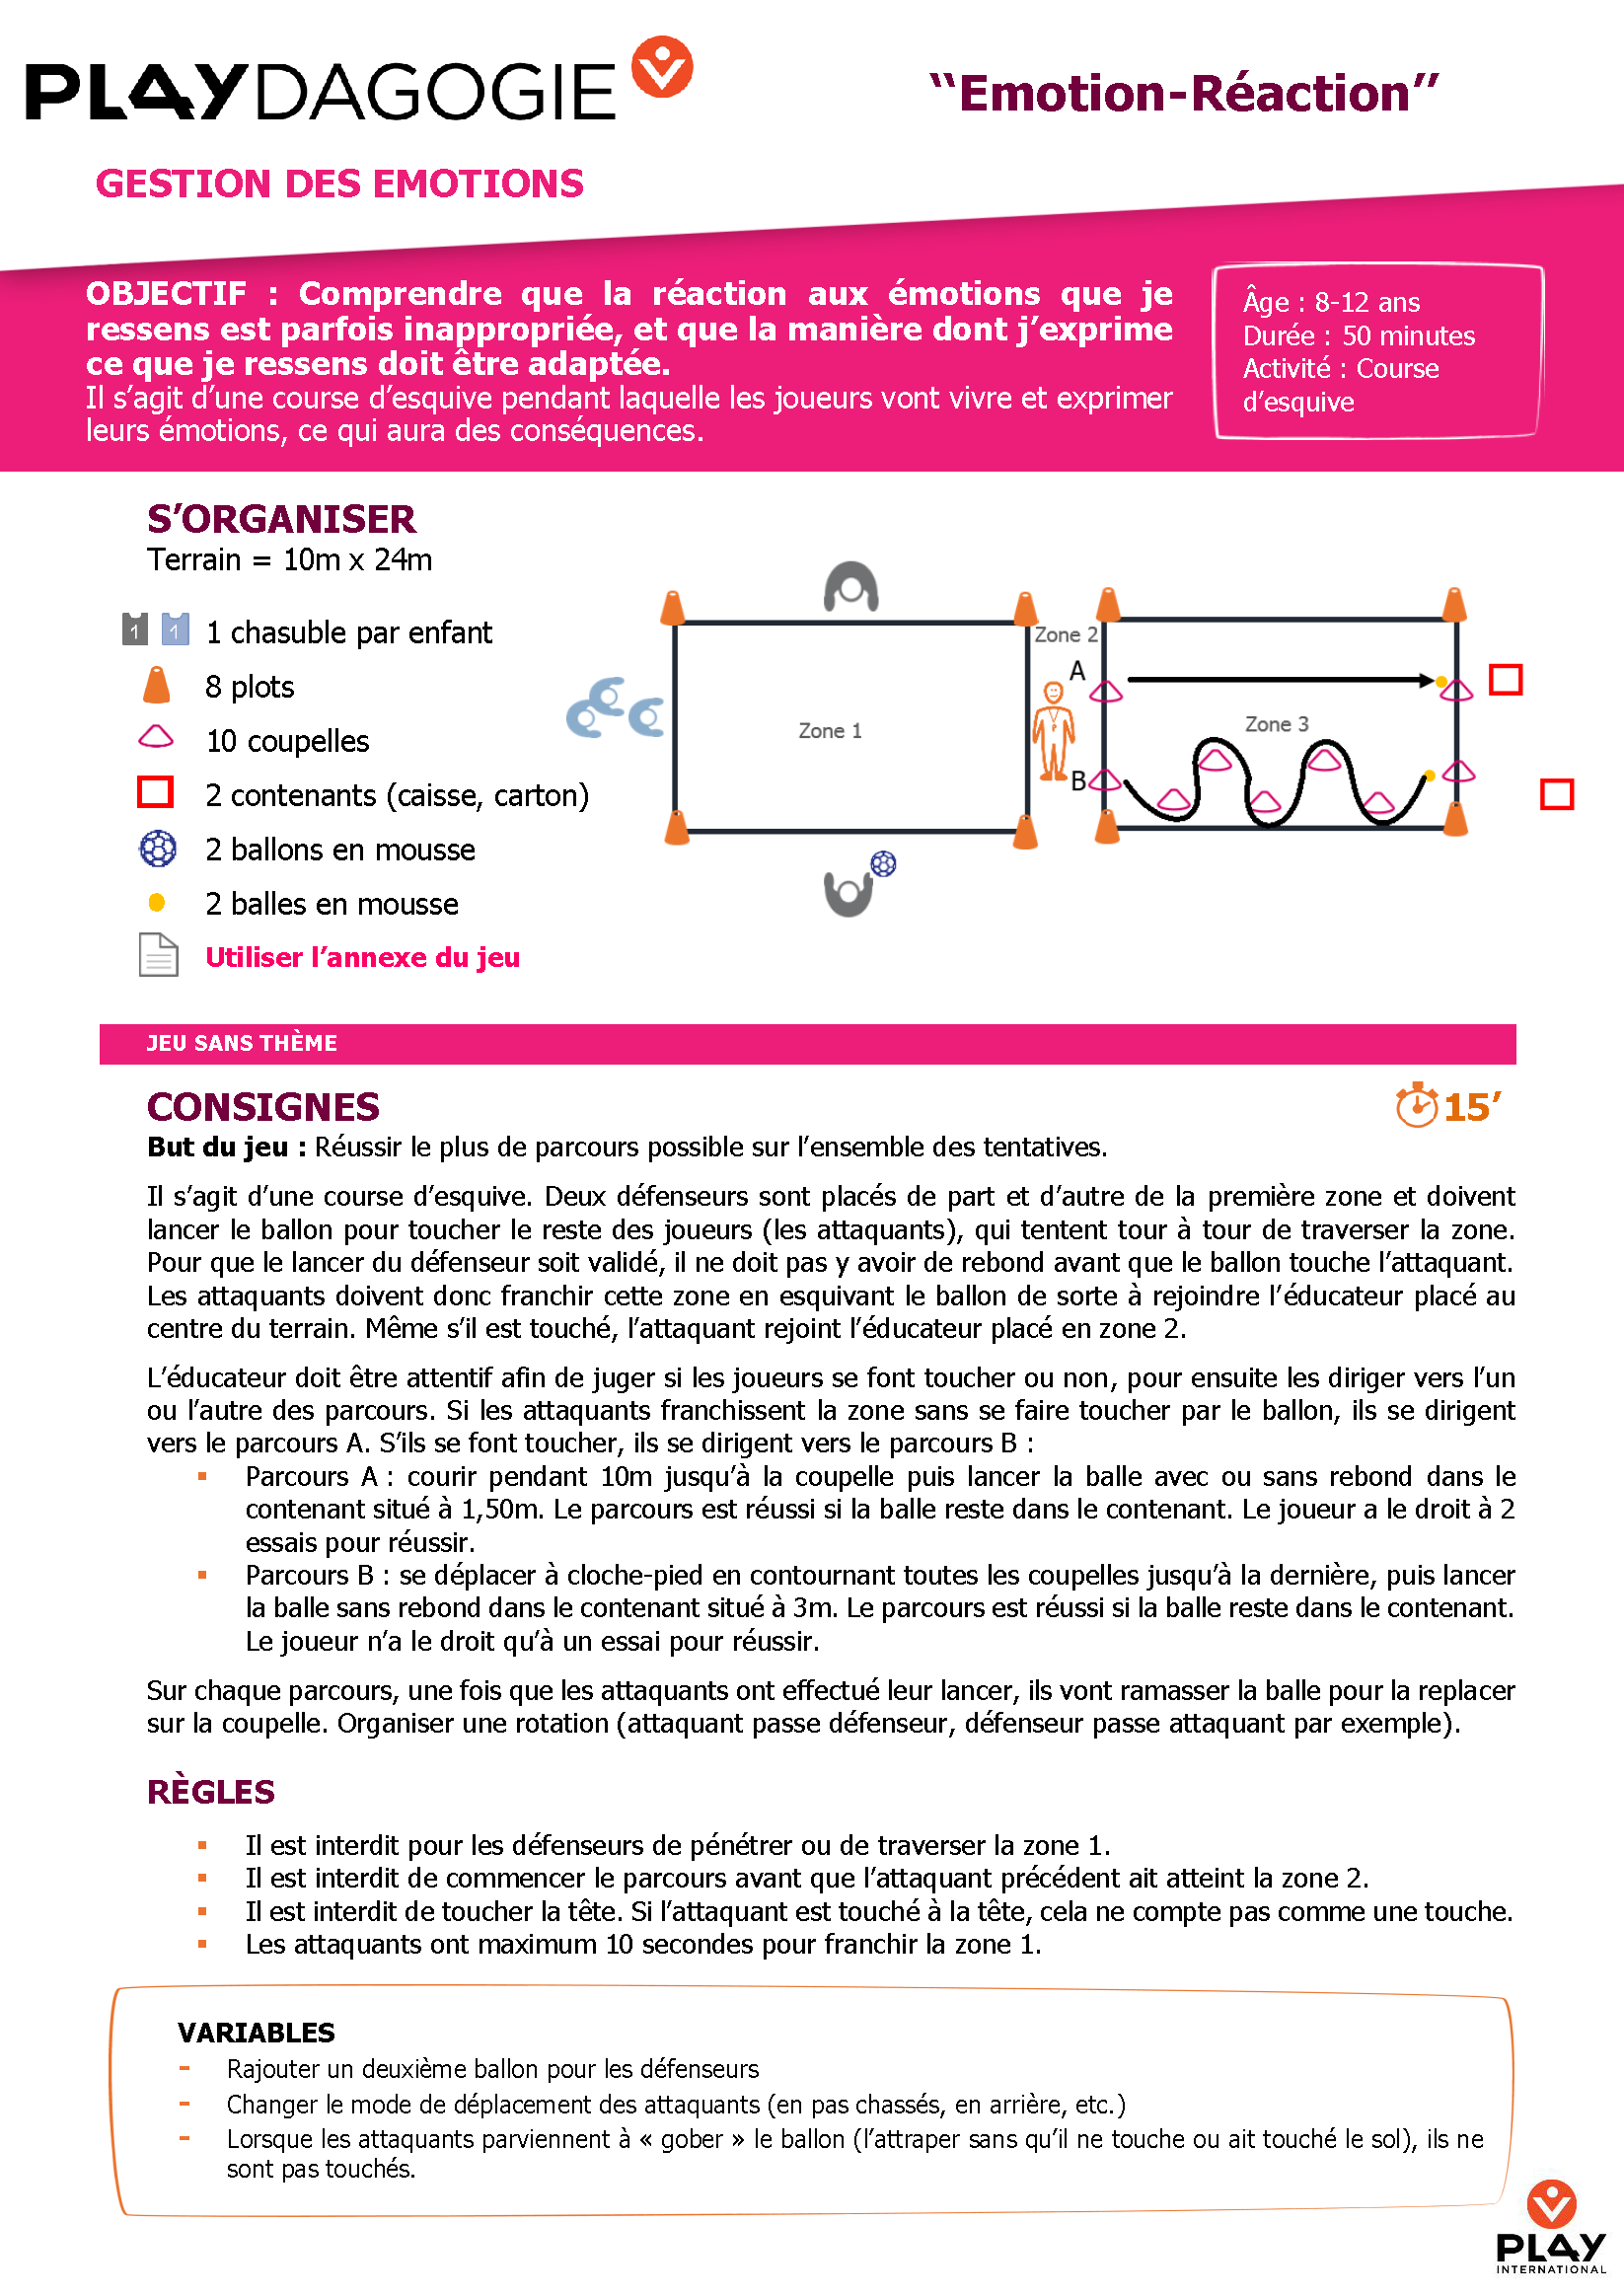 spé-kit gestion des émotions- 4 - emotion reaction